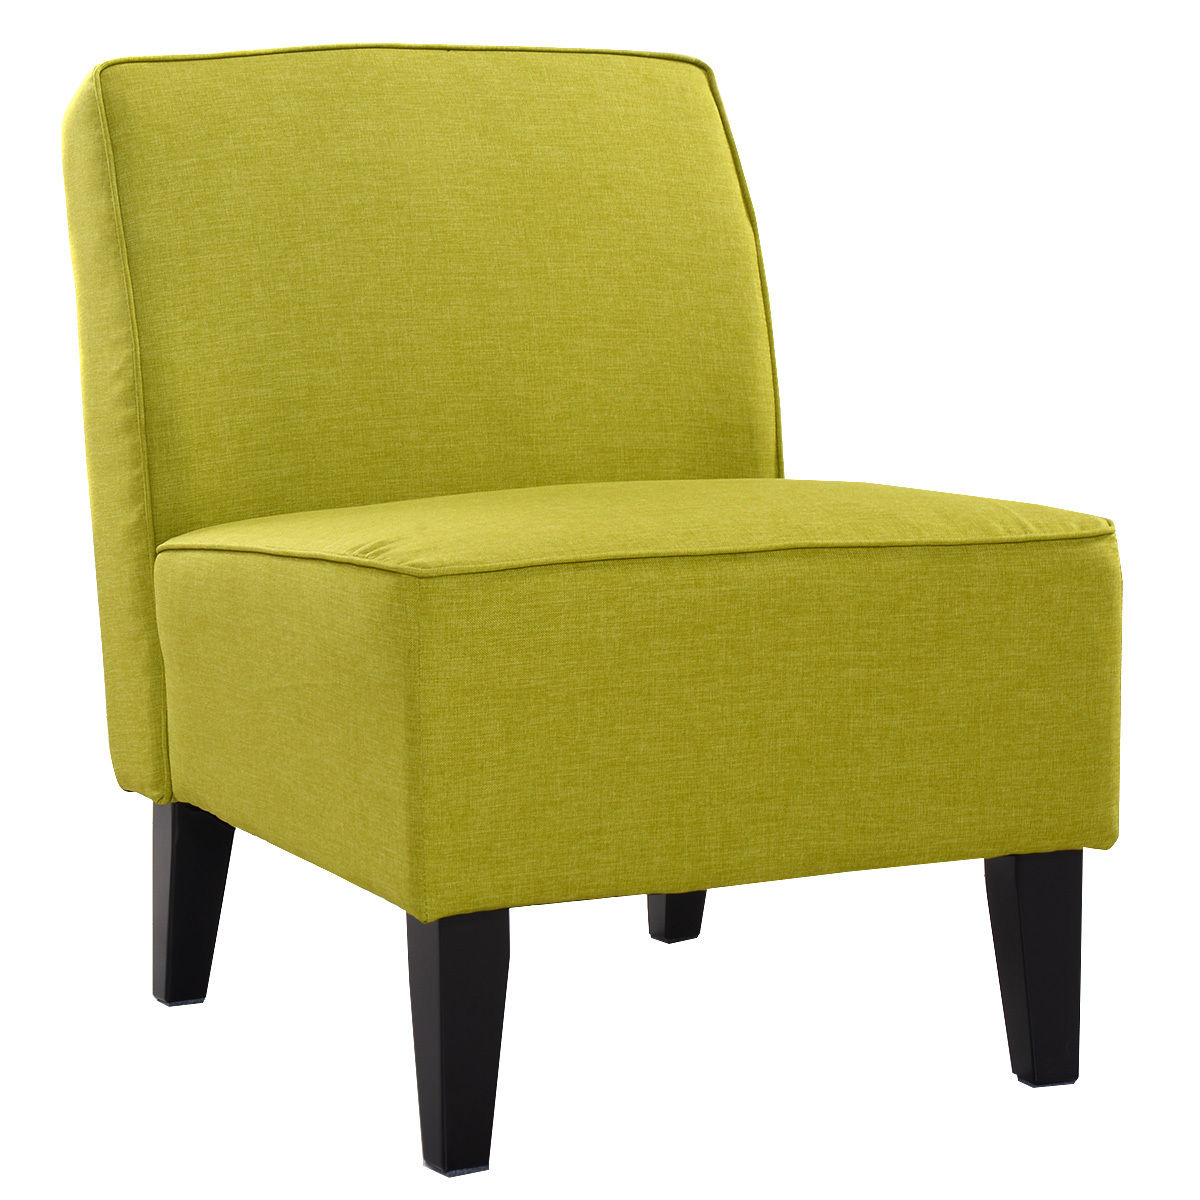 Giantex Accent Chair Armless Contemporary Dining Chair Living Room Furniture Green Modern Fabric Leisure Chairs HW52682GN anso contemporary teal color fabric accent chair